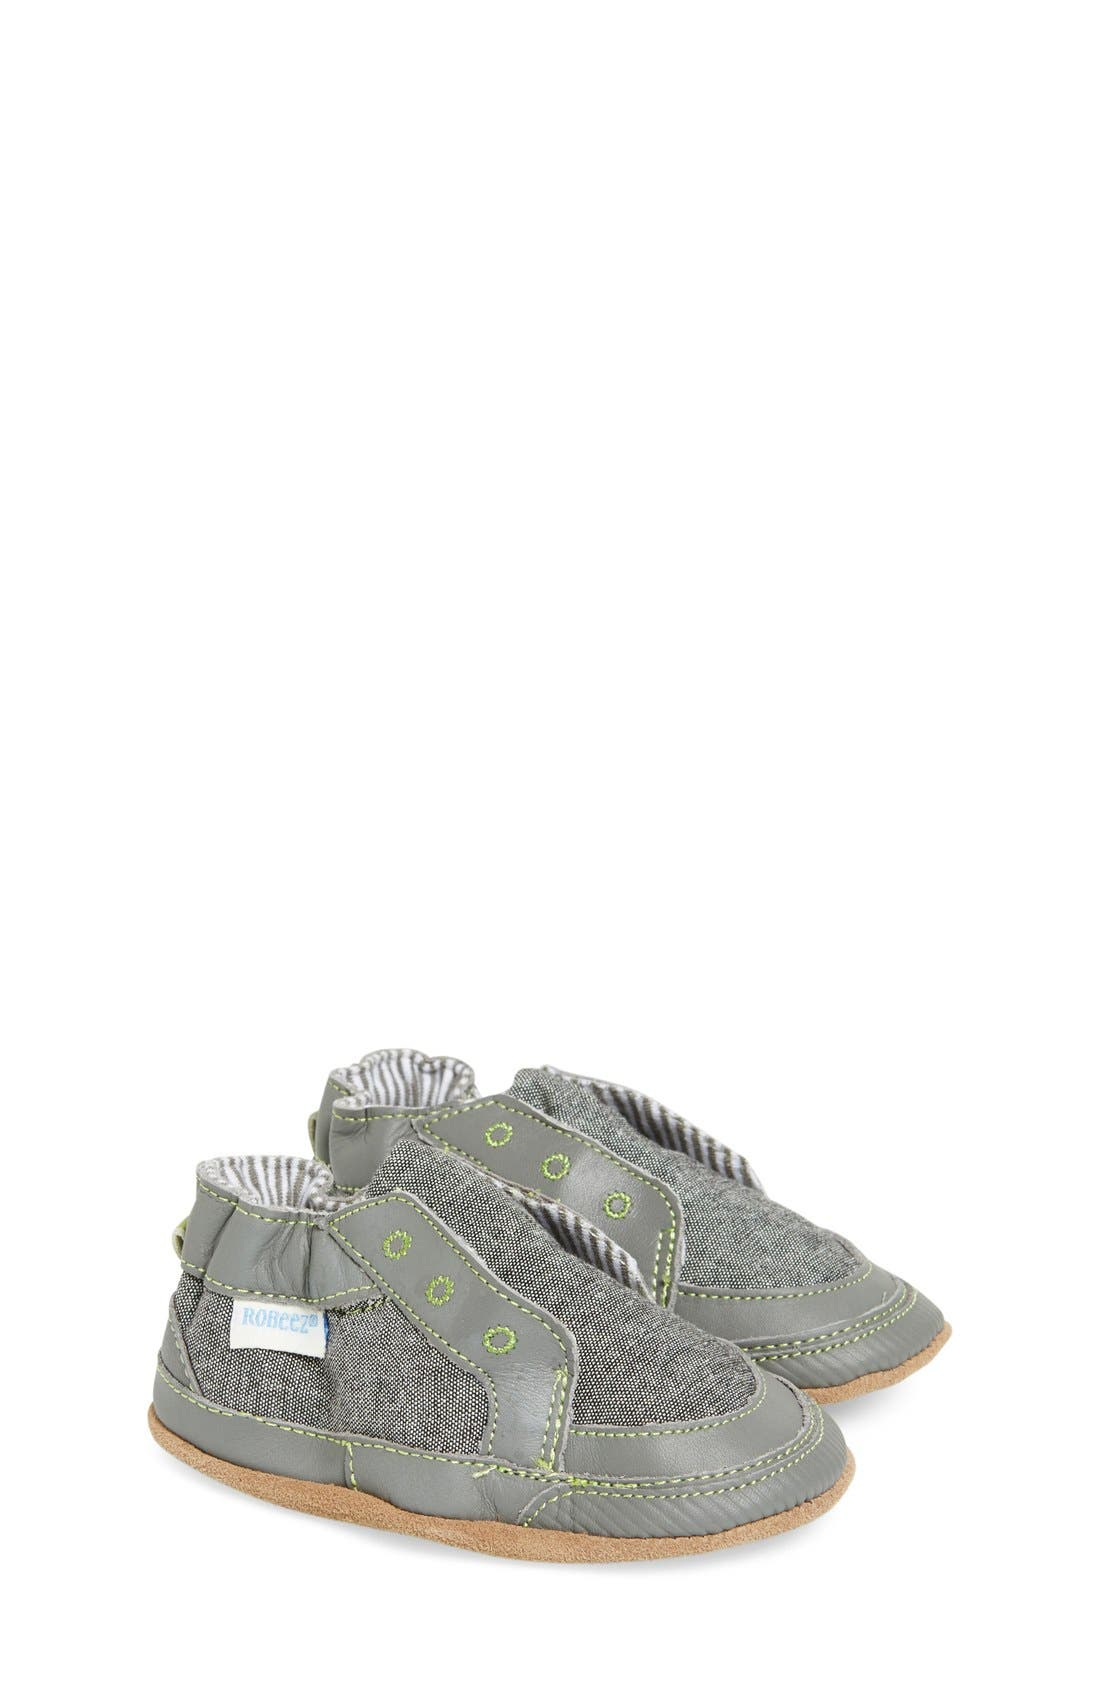 'Stylish Steve' Slip On,                         Main,                         color, GREY